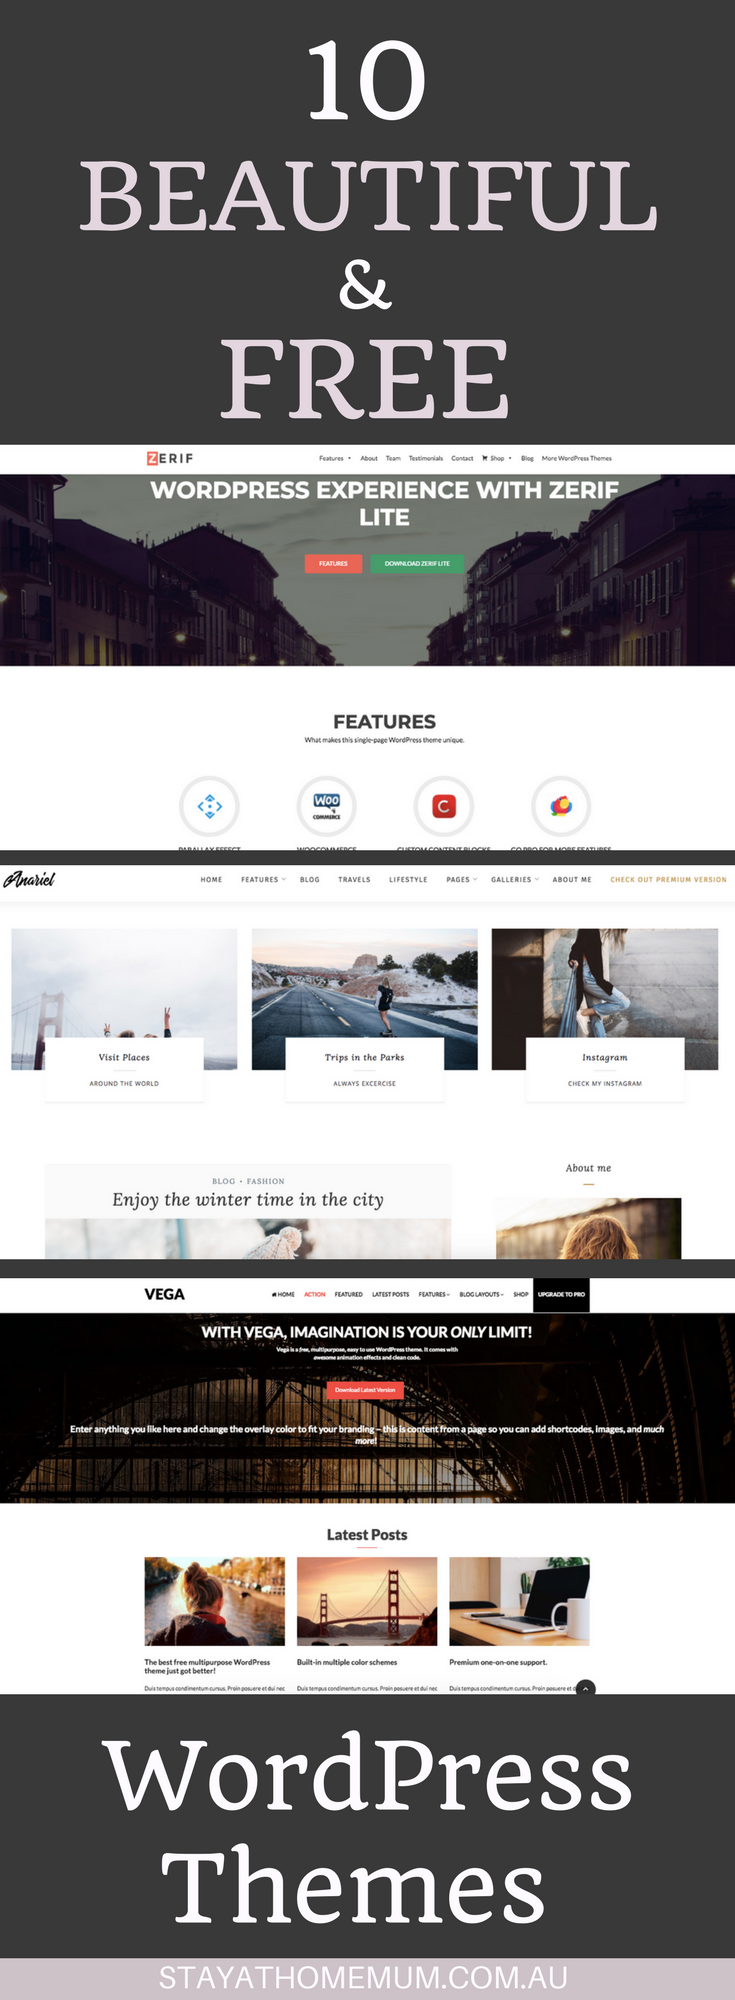 10 Beautiful and Free WordPress Themes